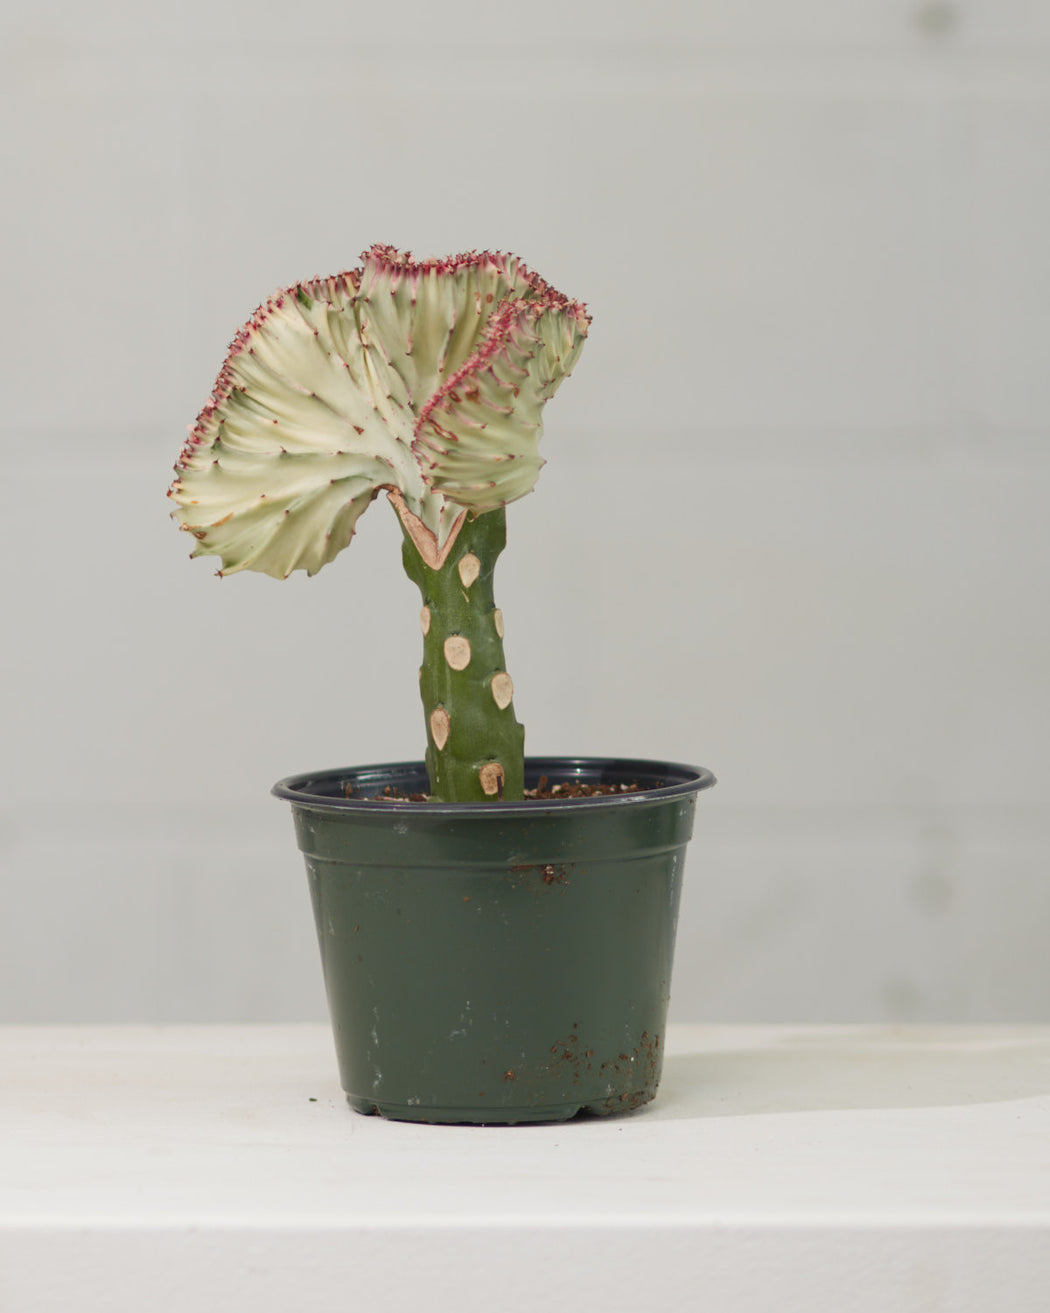 "EUPHORBIA LACTEA 'CORAL CACTUS' 6"" Grower Pot"